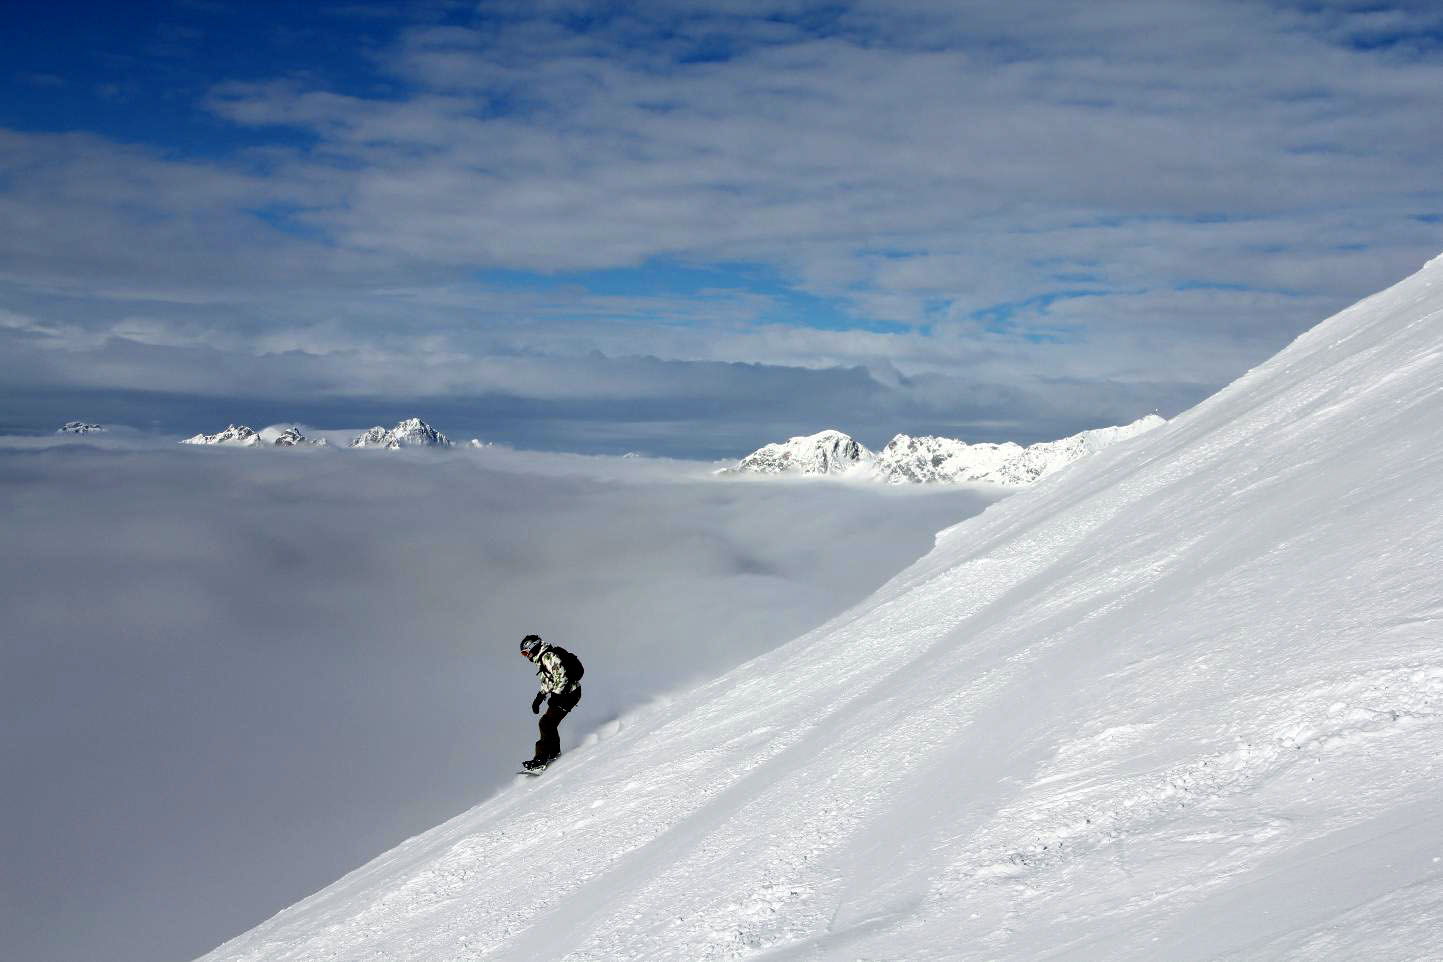 Snowboarding above the clouds © JonoVernon-Powell